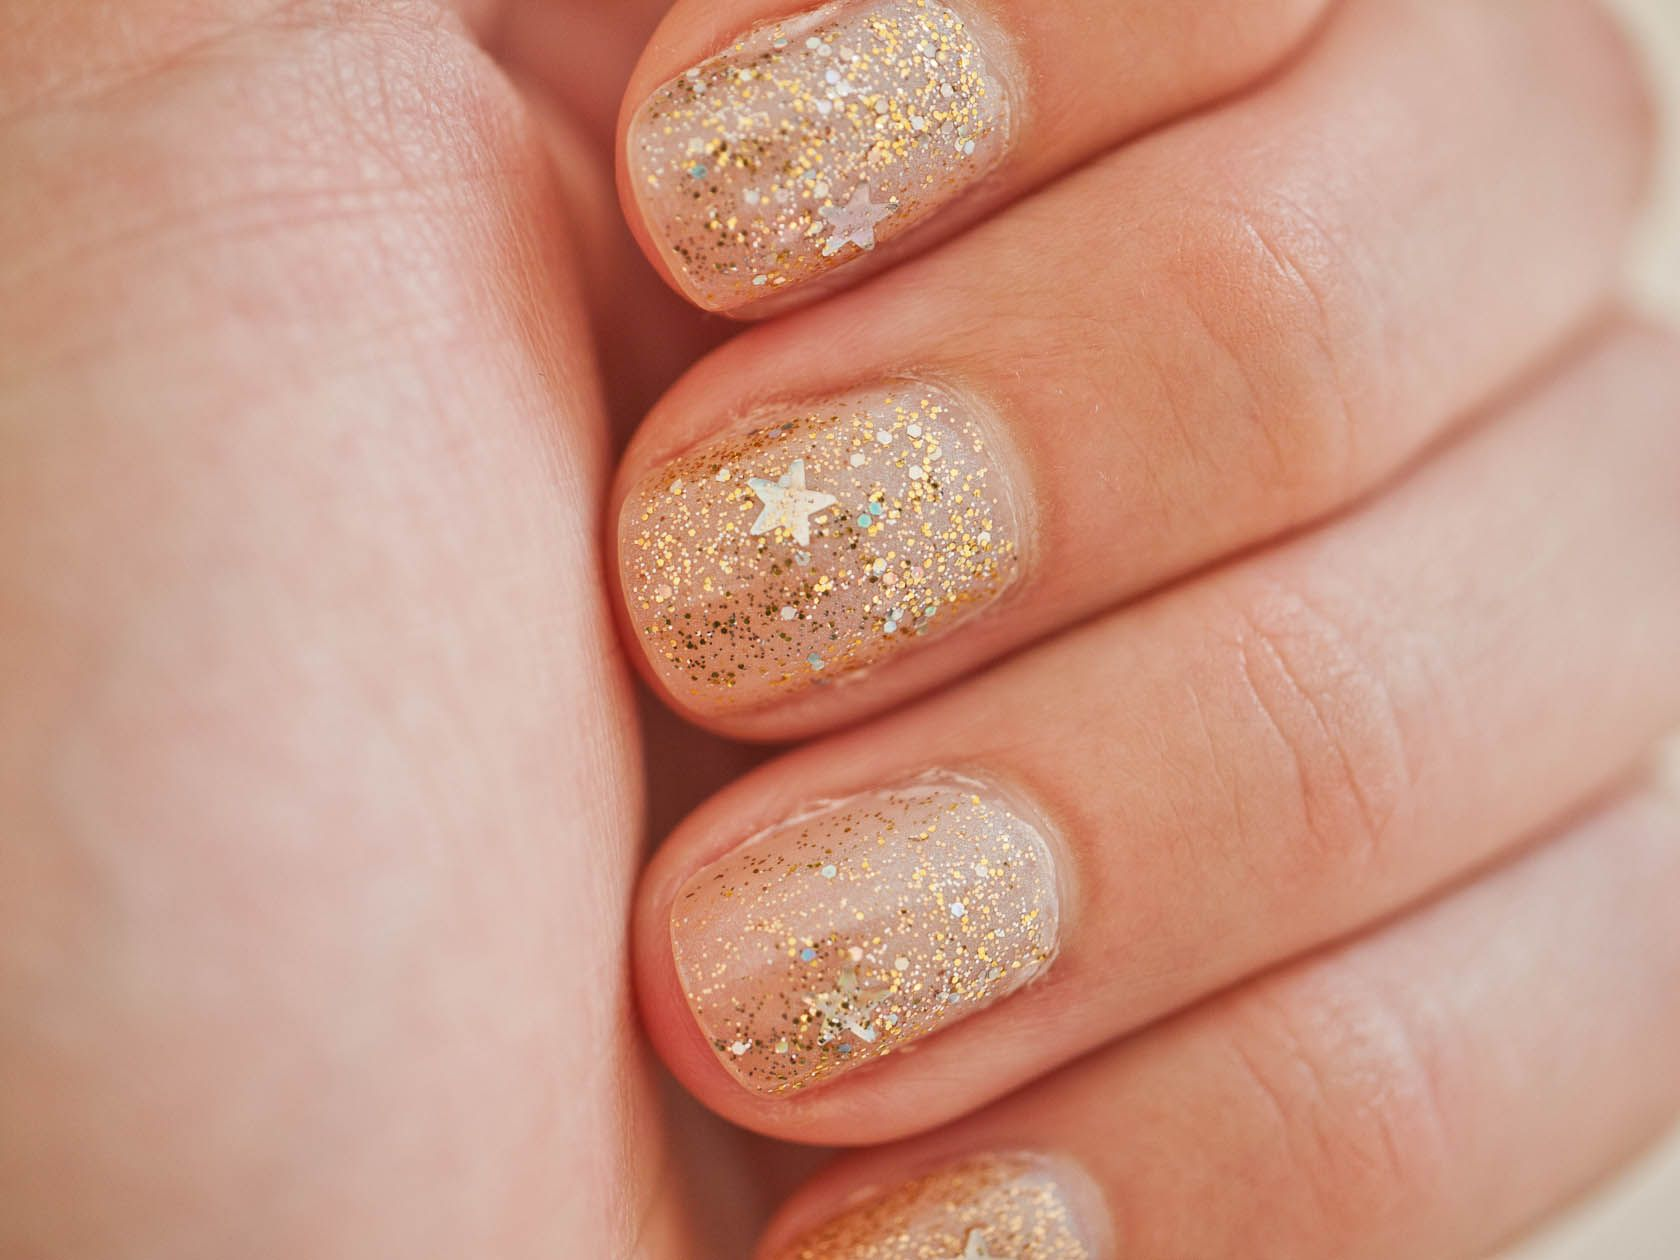 Nail art designs with gold and silver glitter | Fashion Belief ...